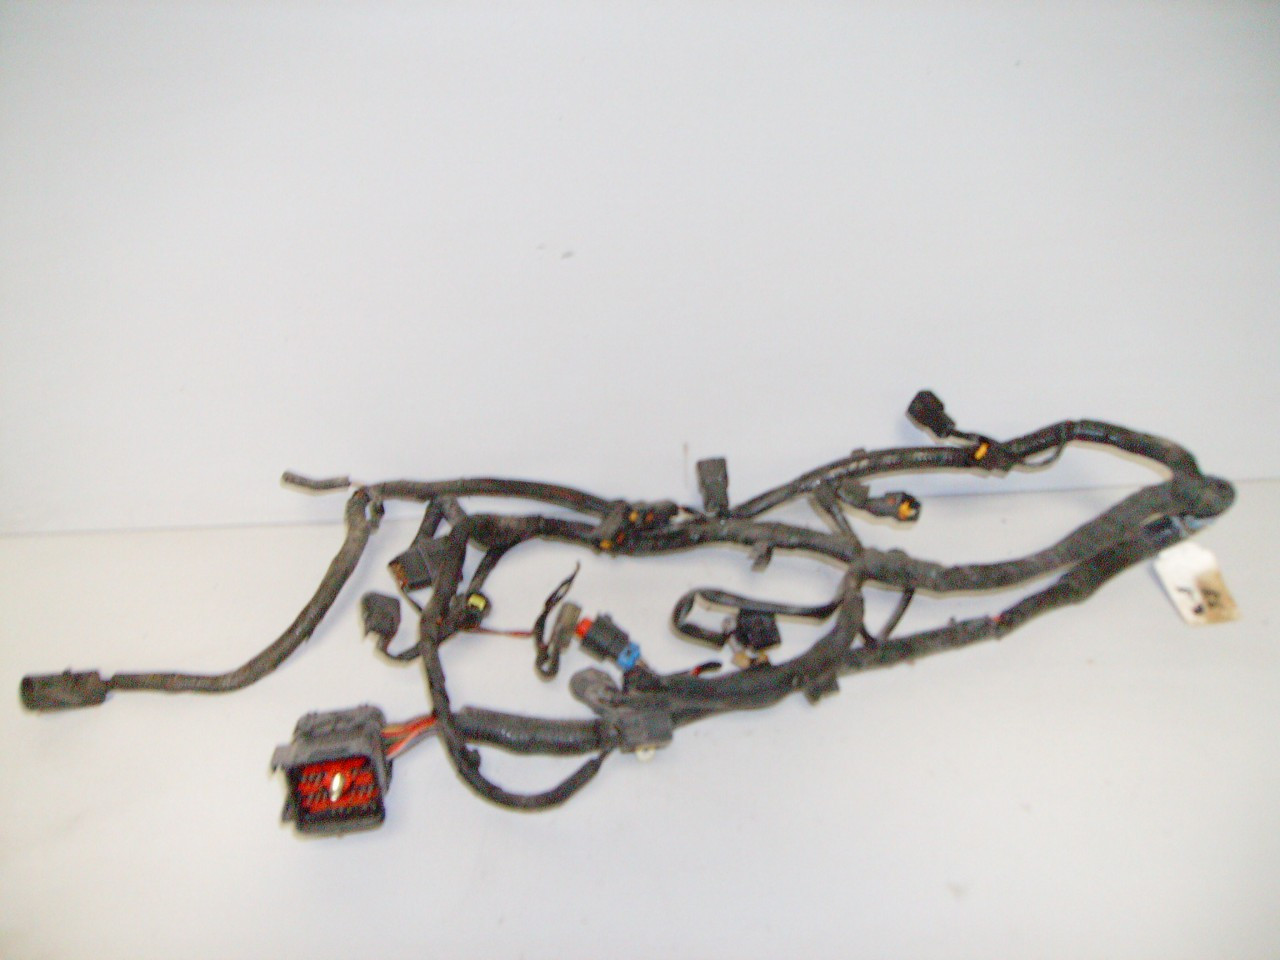 1996 1998 Ford Mustang 38 Engine Injection Wire Harness Lx V6 Wiring Harnesses For Cars Image 1